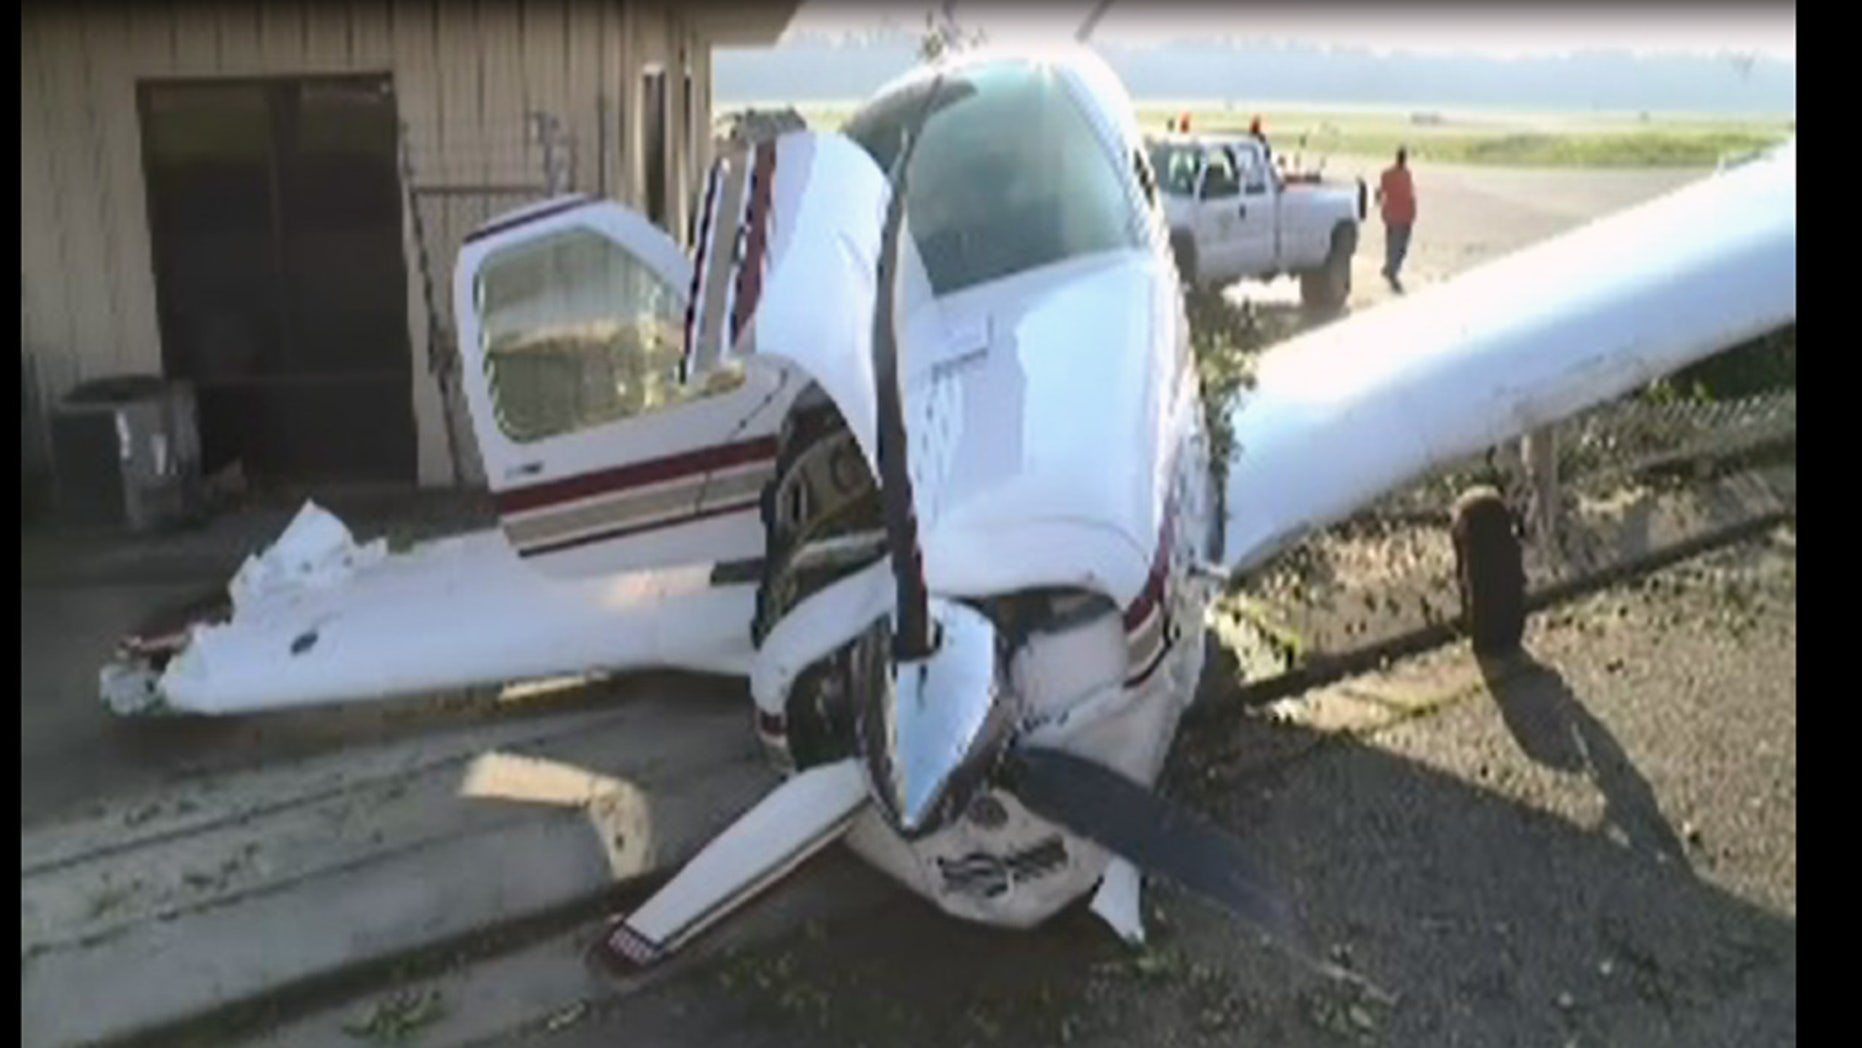 Small plane crashes at California airport with nobody inside | Fox News